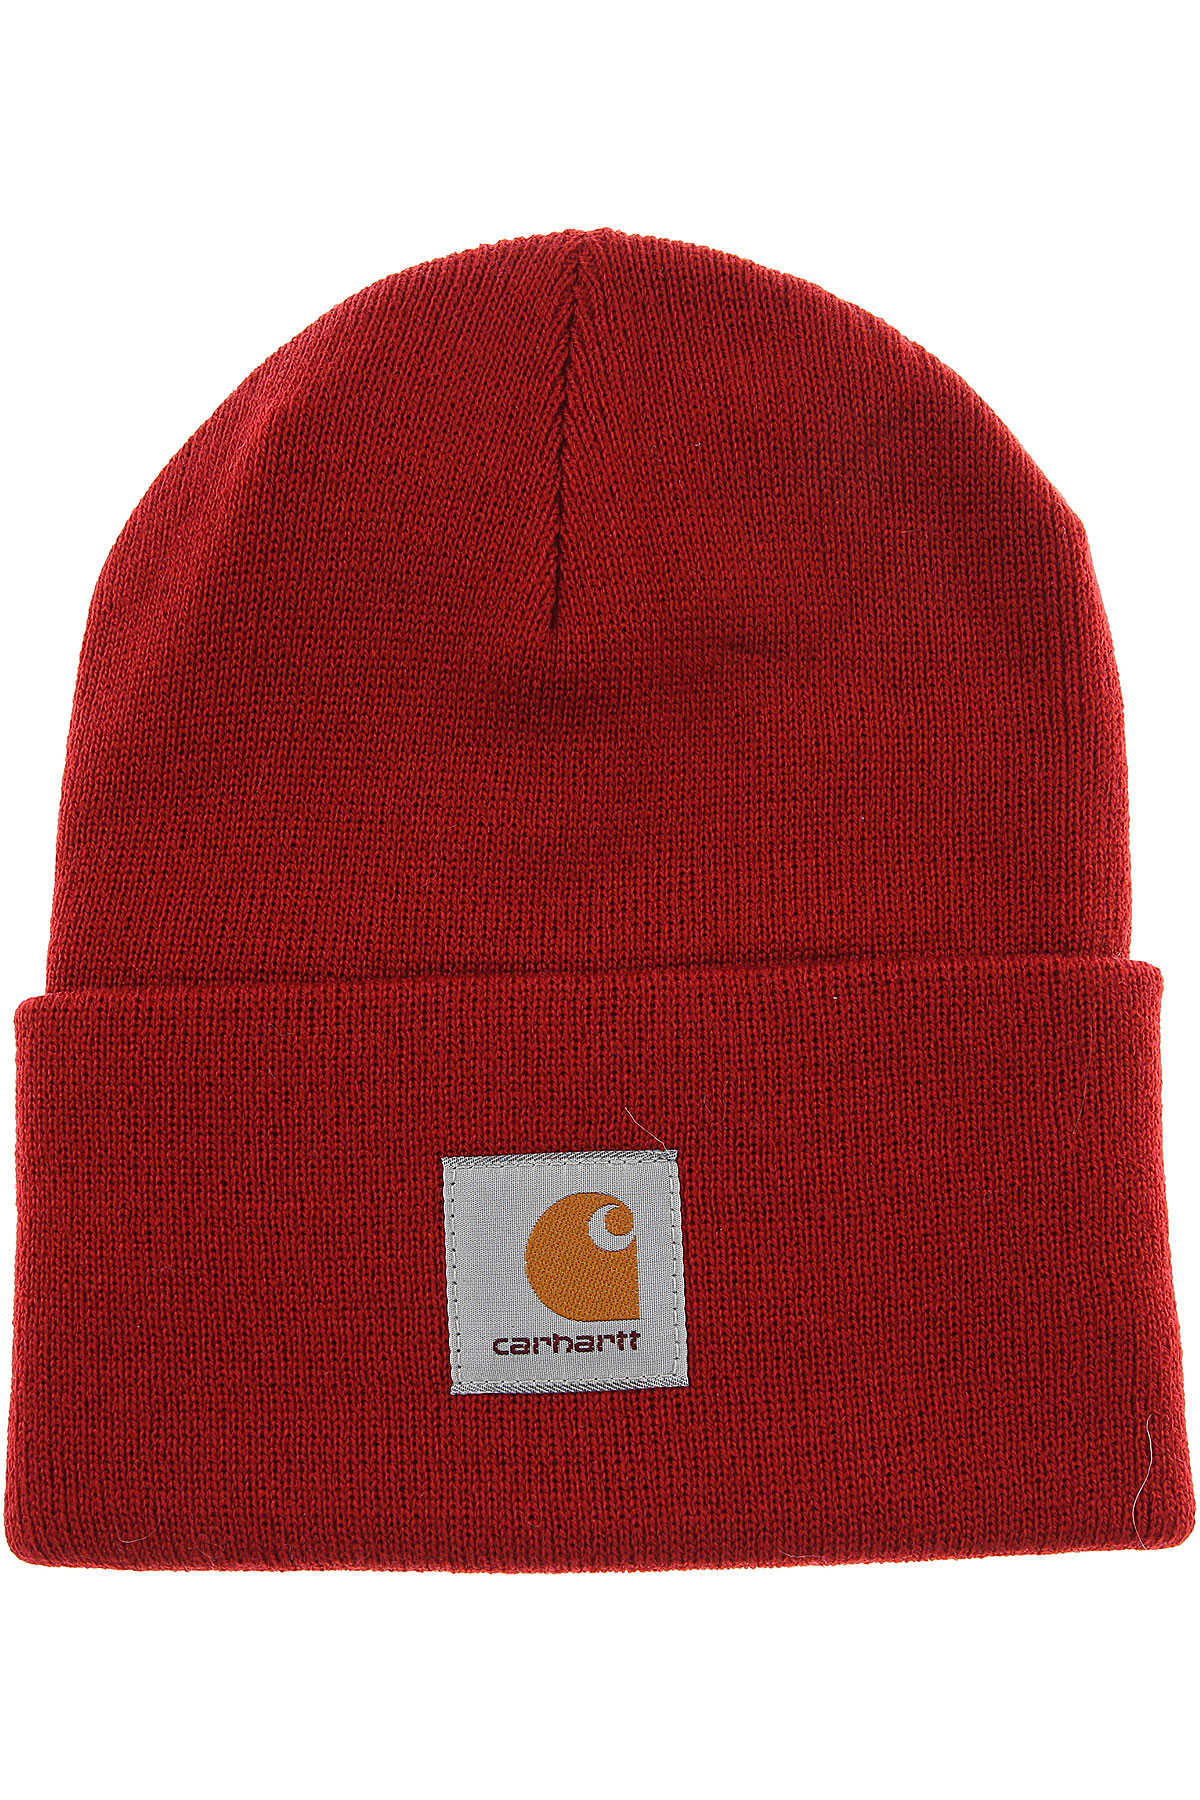 Carhartt Hat for Women in Outlet Bright Red USA - GOOFASH